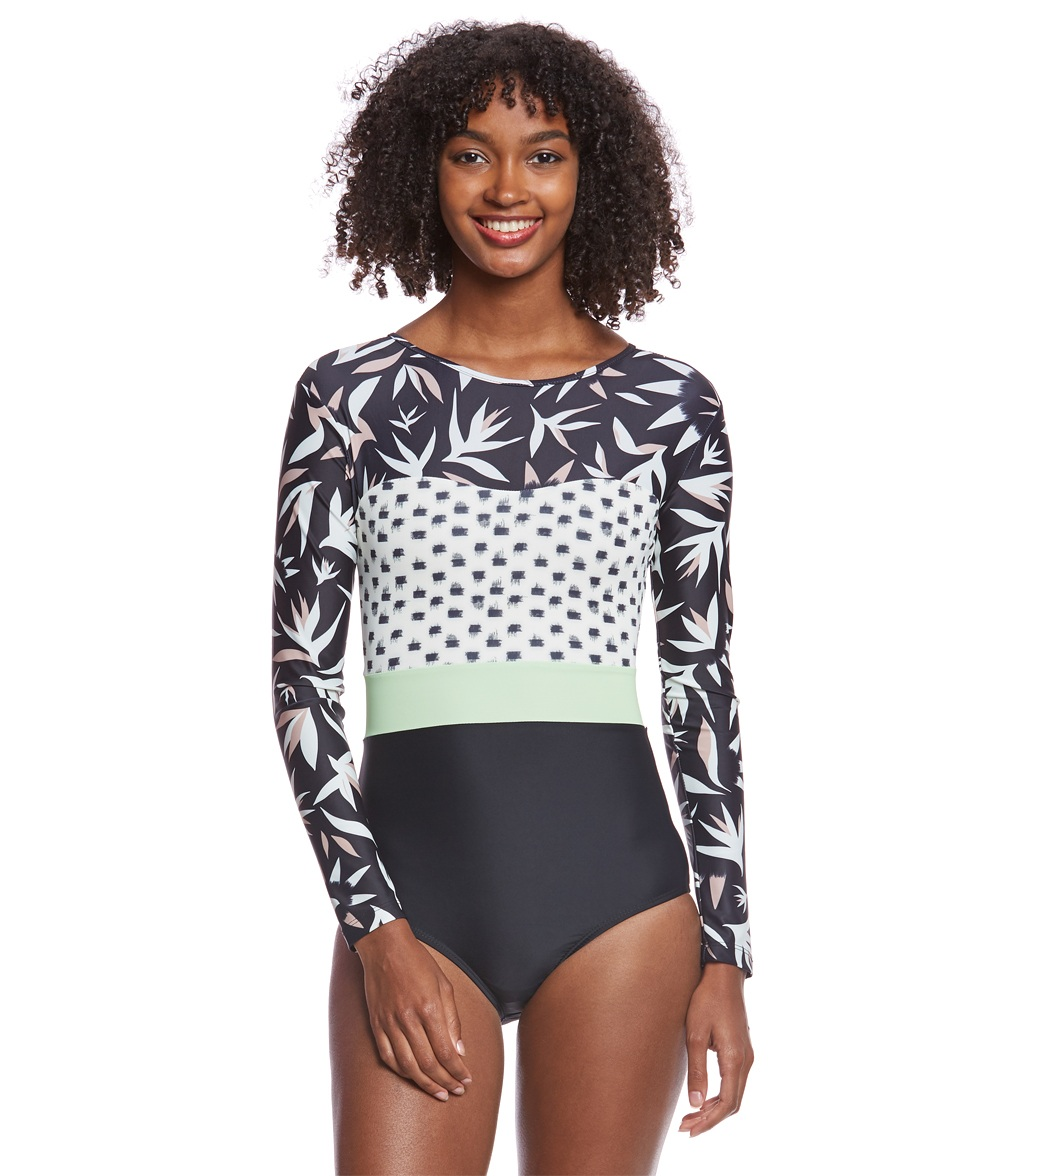 Seea Ebon Hermosa L S Surf Suit at SwimOutlet.com - Free Shipping 40289eaa4